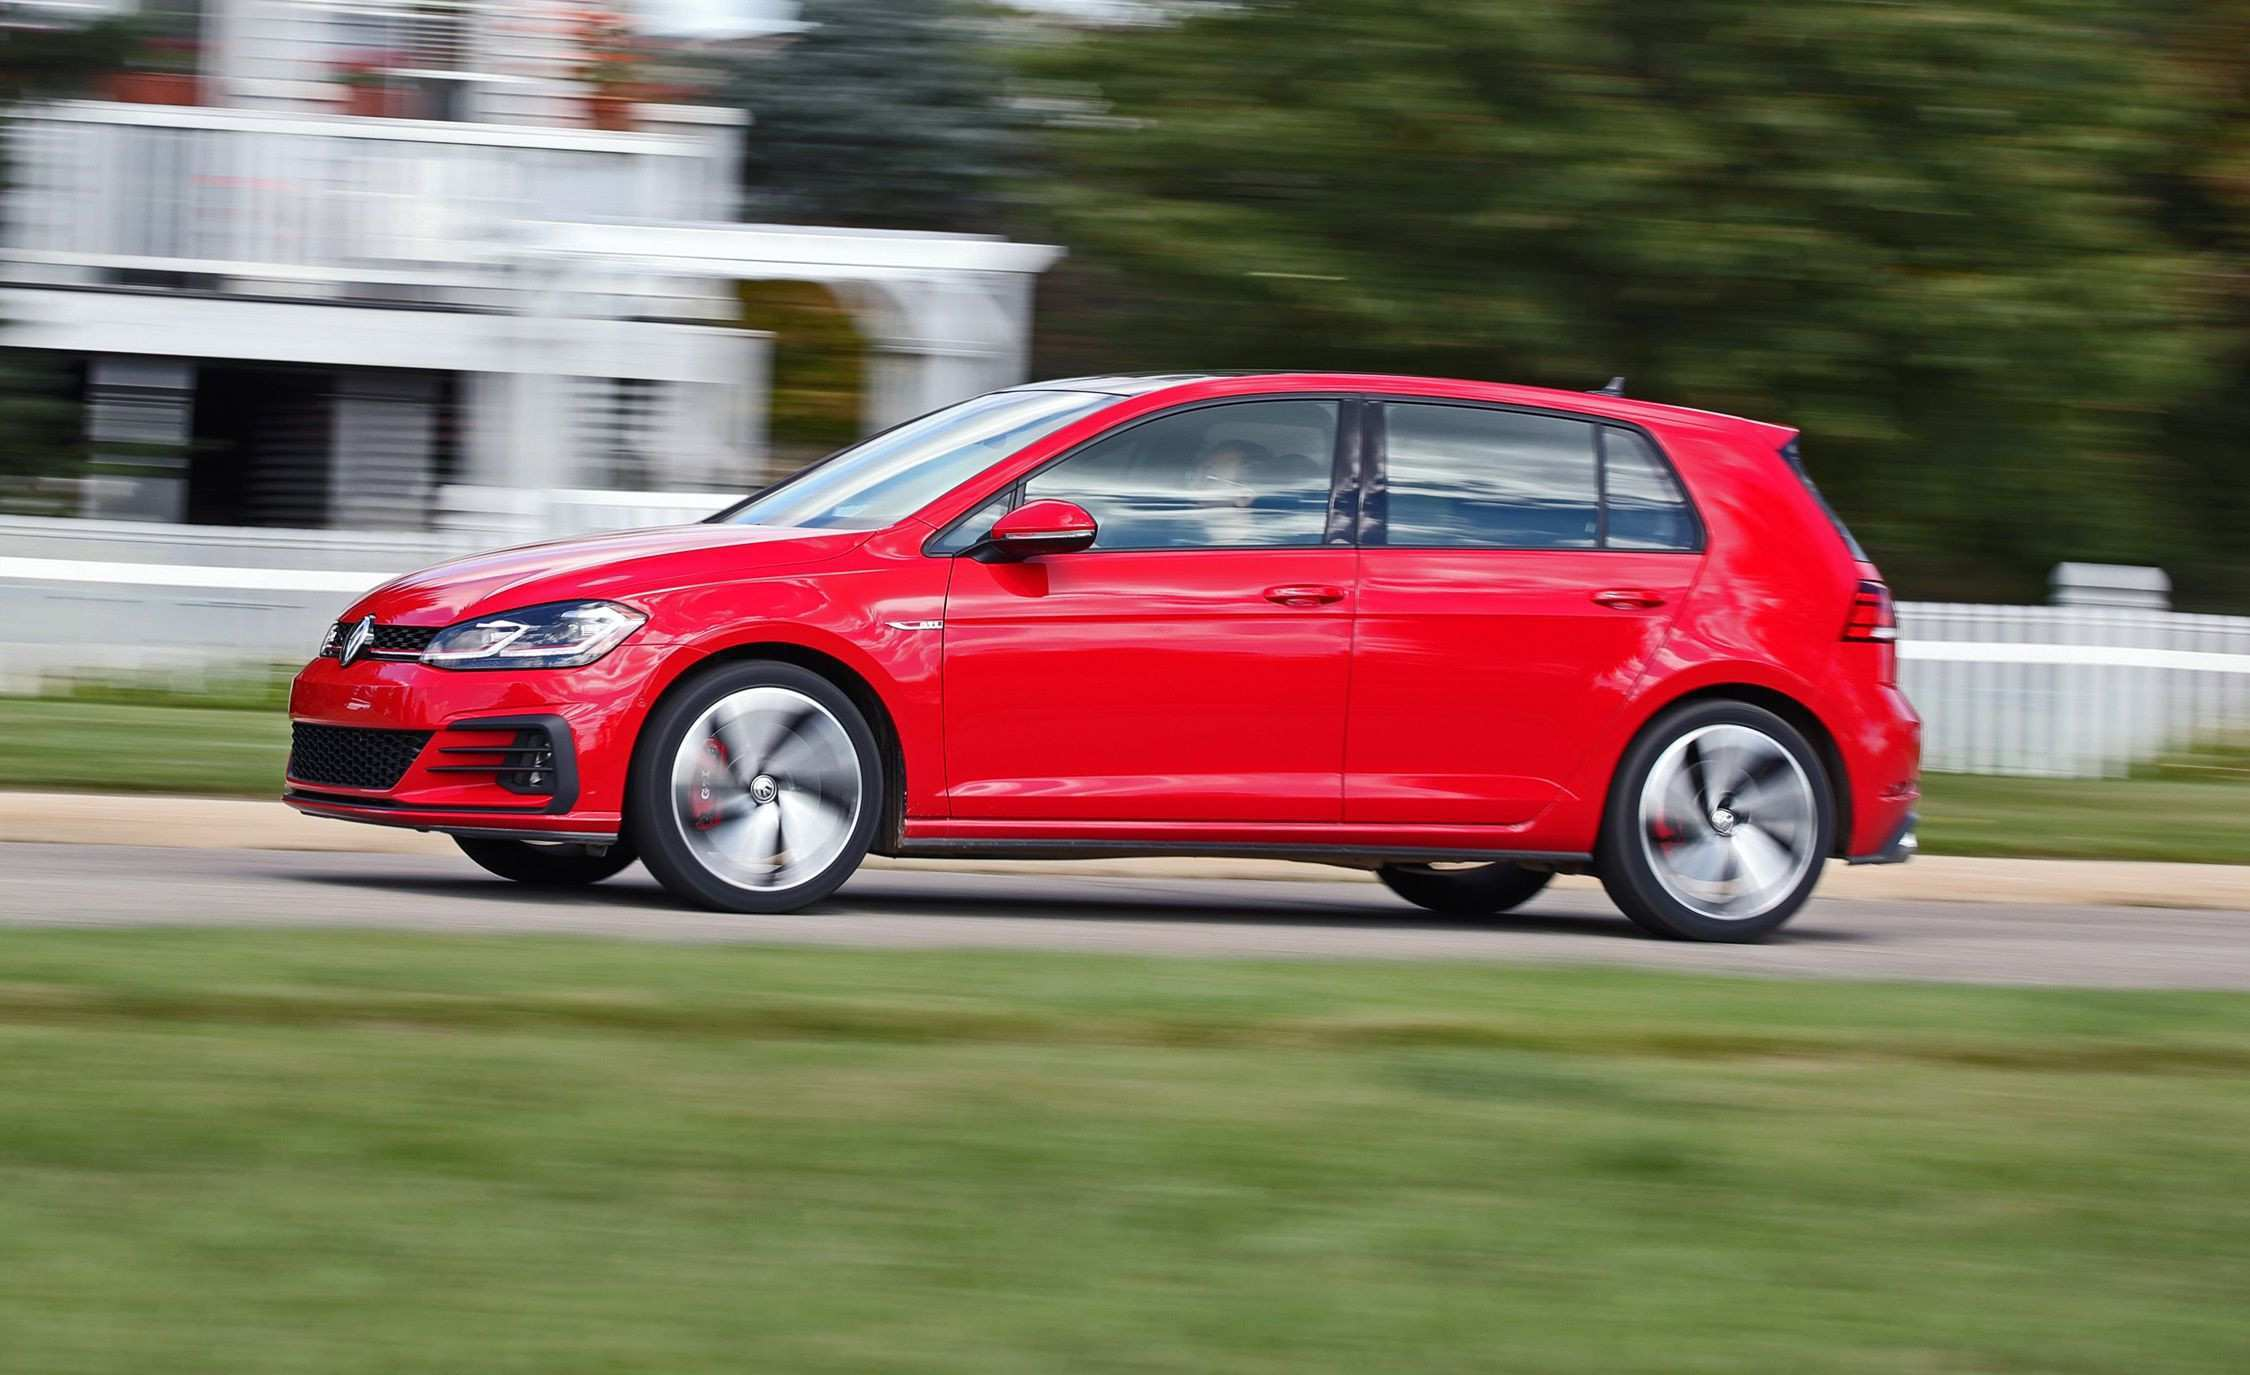 90 The Best 2020 VW Golf R USA Prices